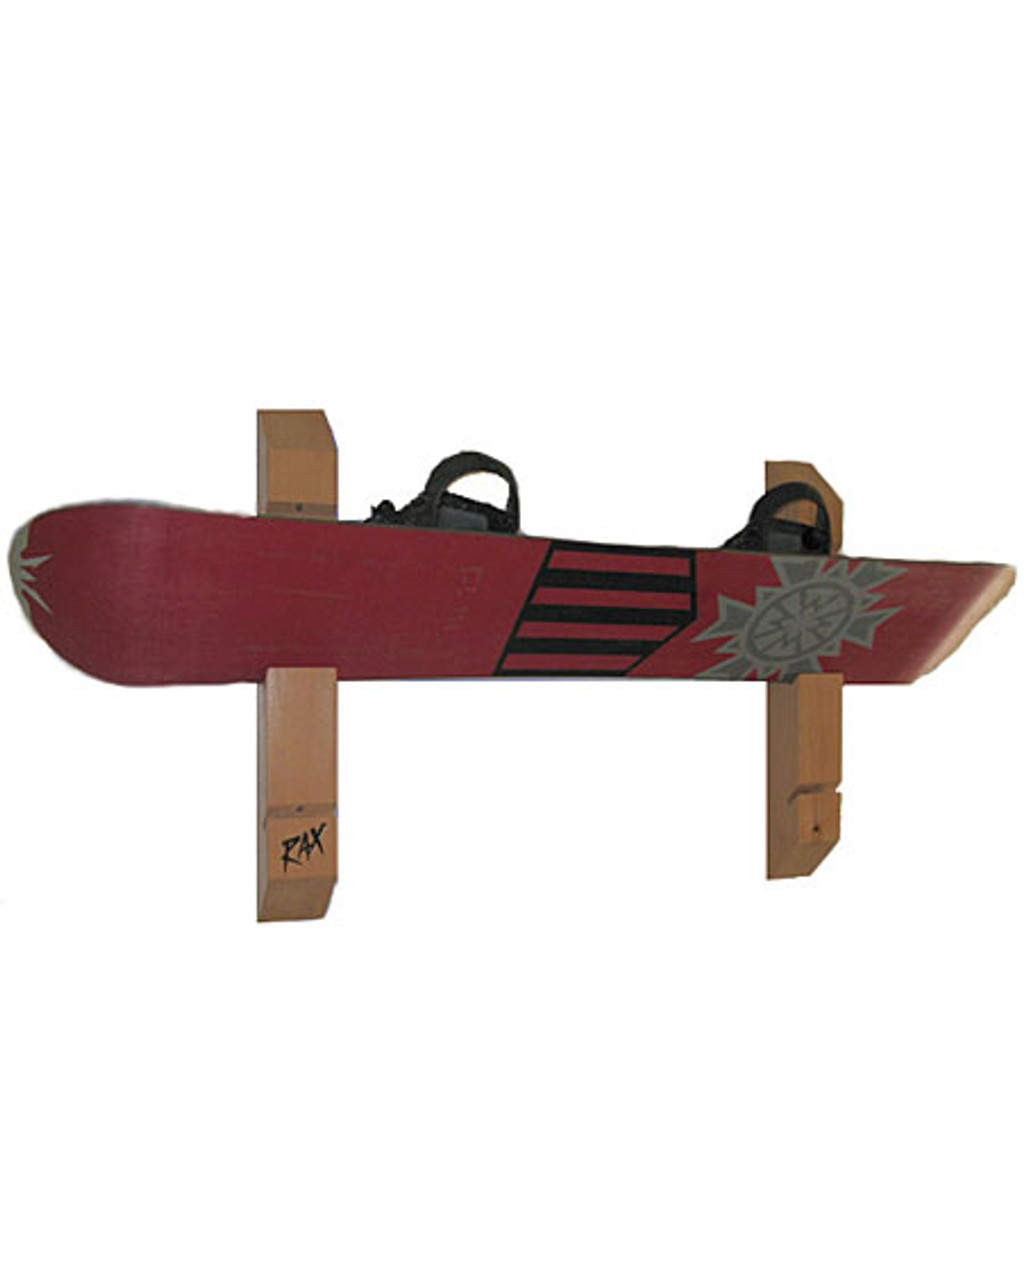 cedar snowboard display rack